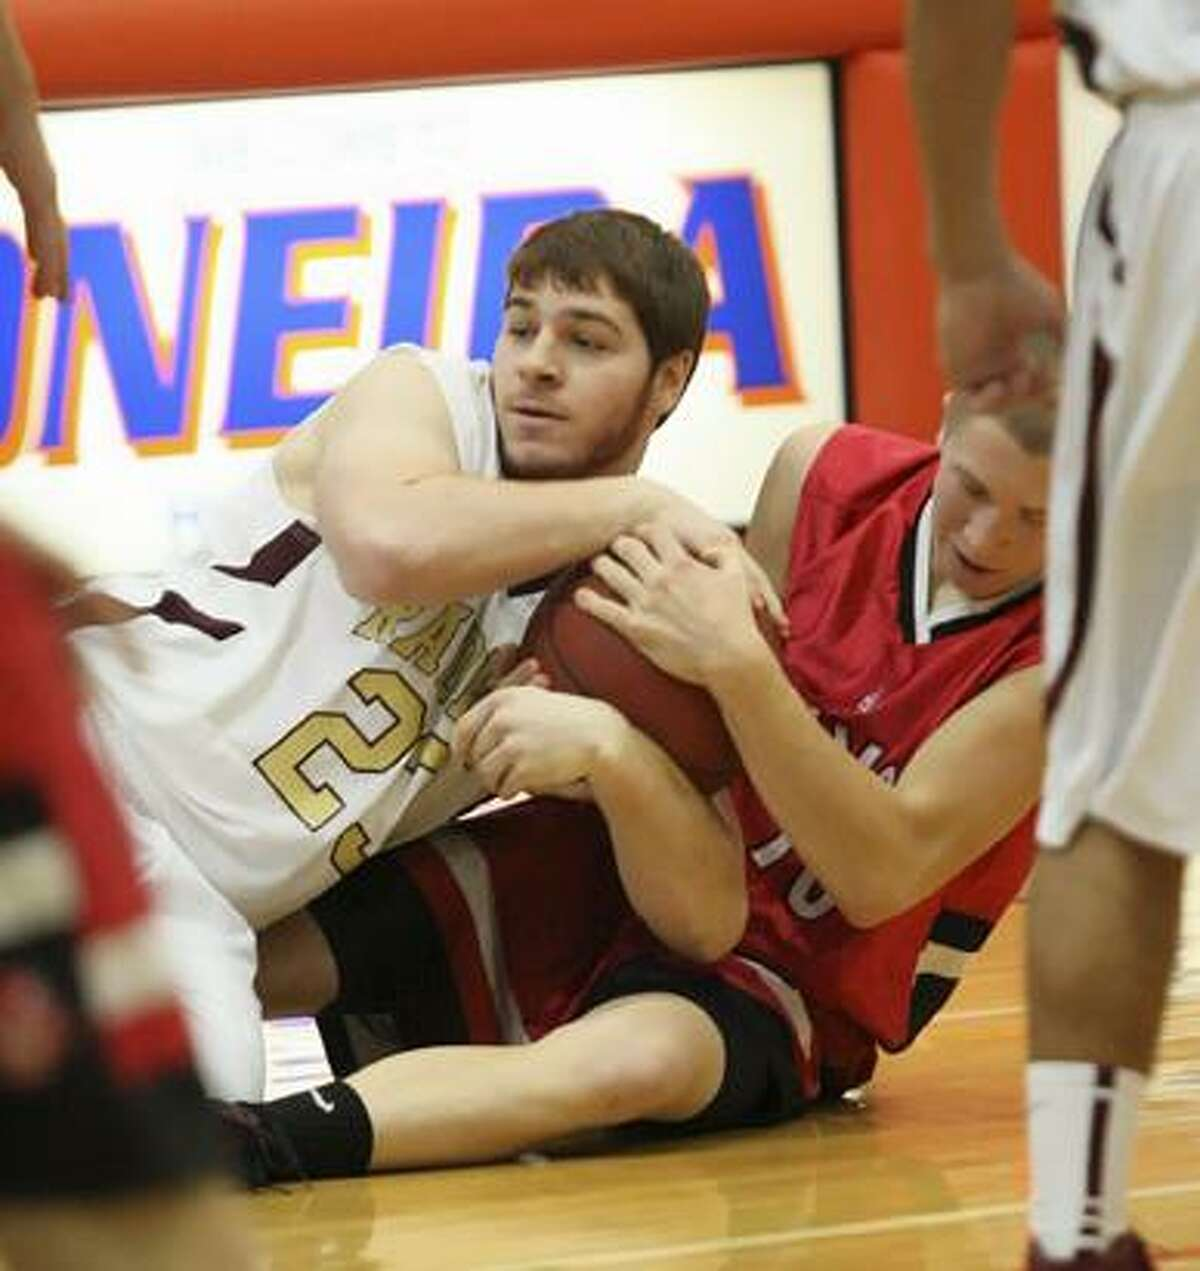 Dispatch Staff Photo by JOHN HAEGER twitter.com/oneidaphotoVVS Christian Tiffin (30) and Canastota's Matt Russitano (23) tie up for the loose ball on the floor in the second half of the 13th Annual Alliance Bank Oneida Sports Boosters Basketball Shootout consolation game on Saturday, Dec. 1, 2012 in Oneida.